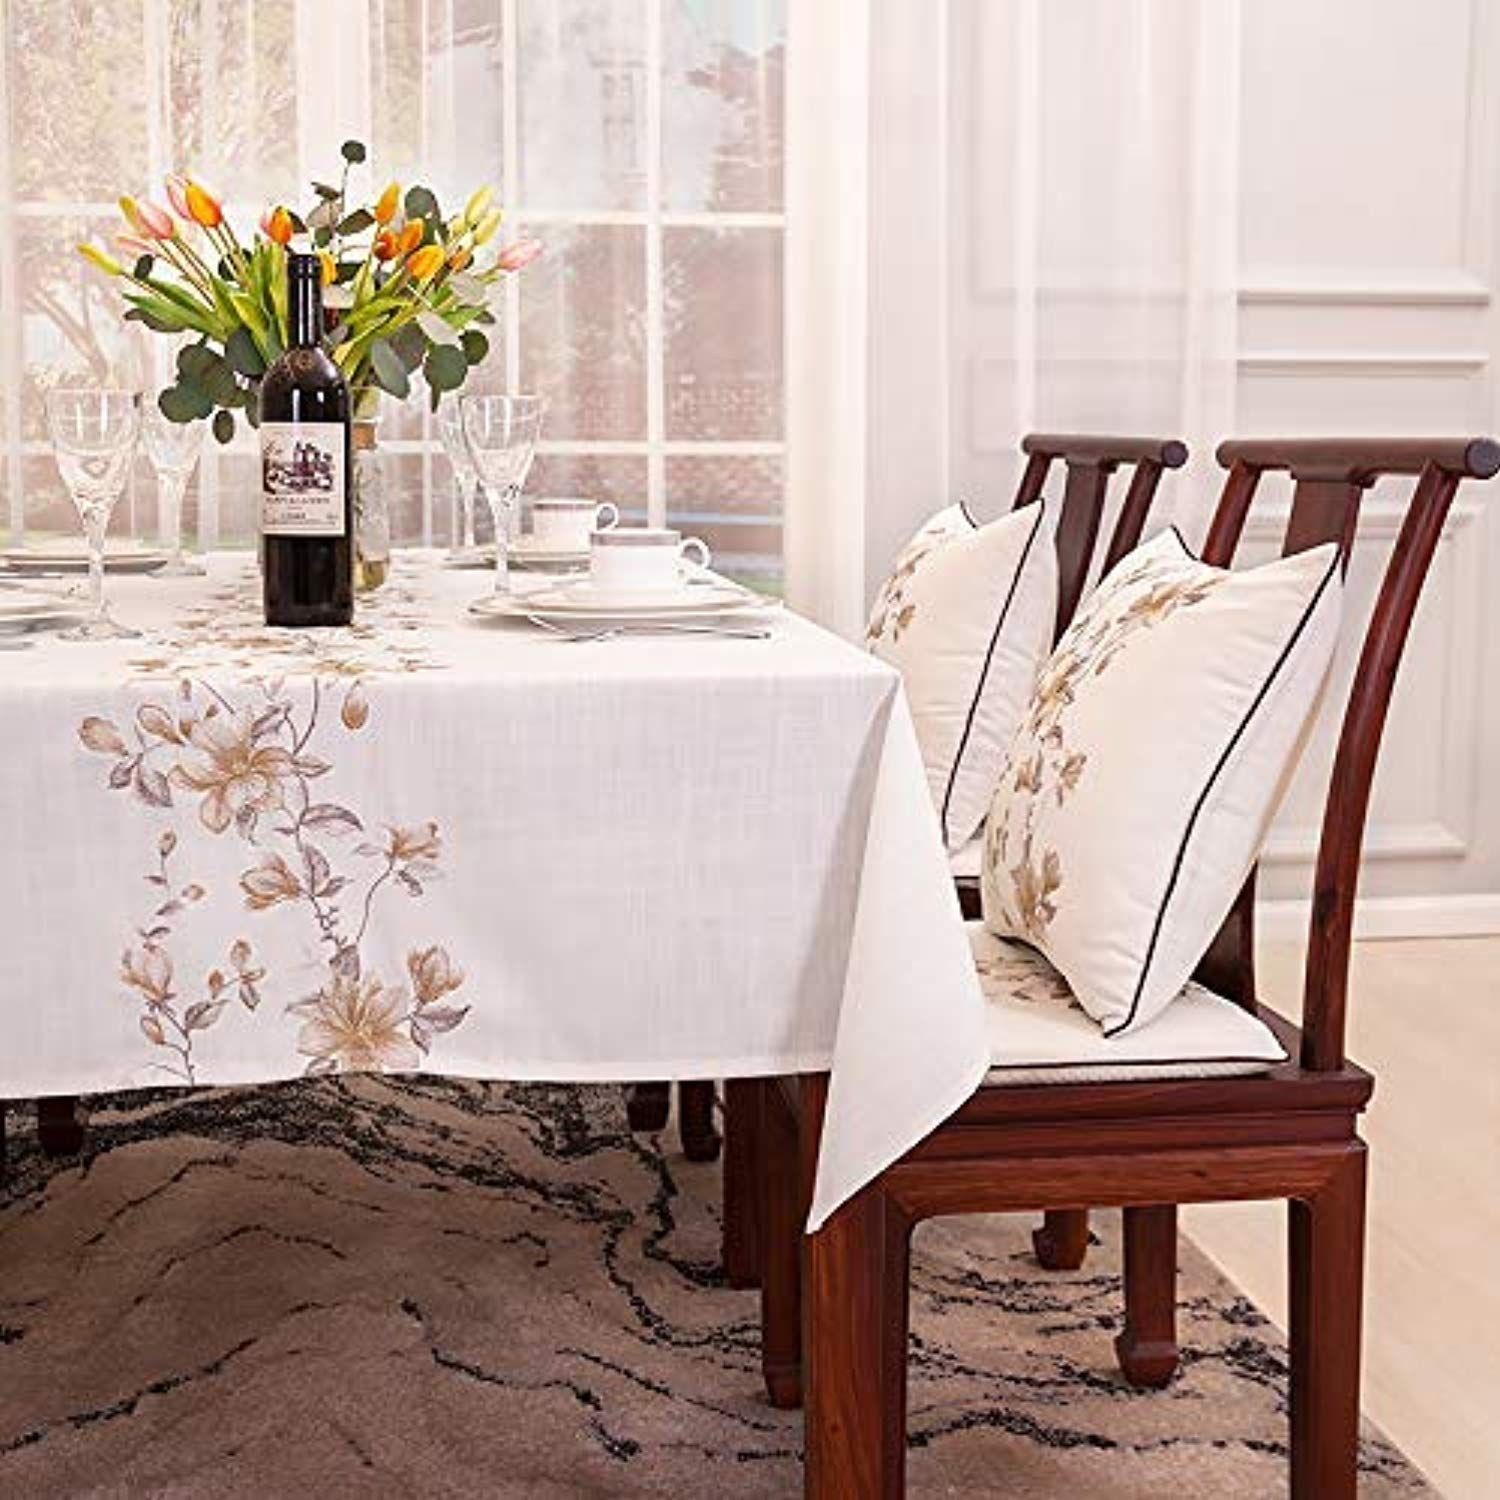 Decorative Waterproof Tablecloths Home Decor Home Modern Chinese